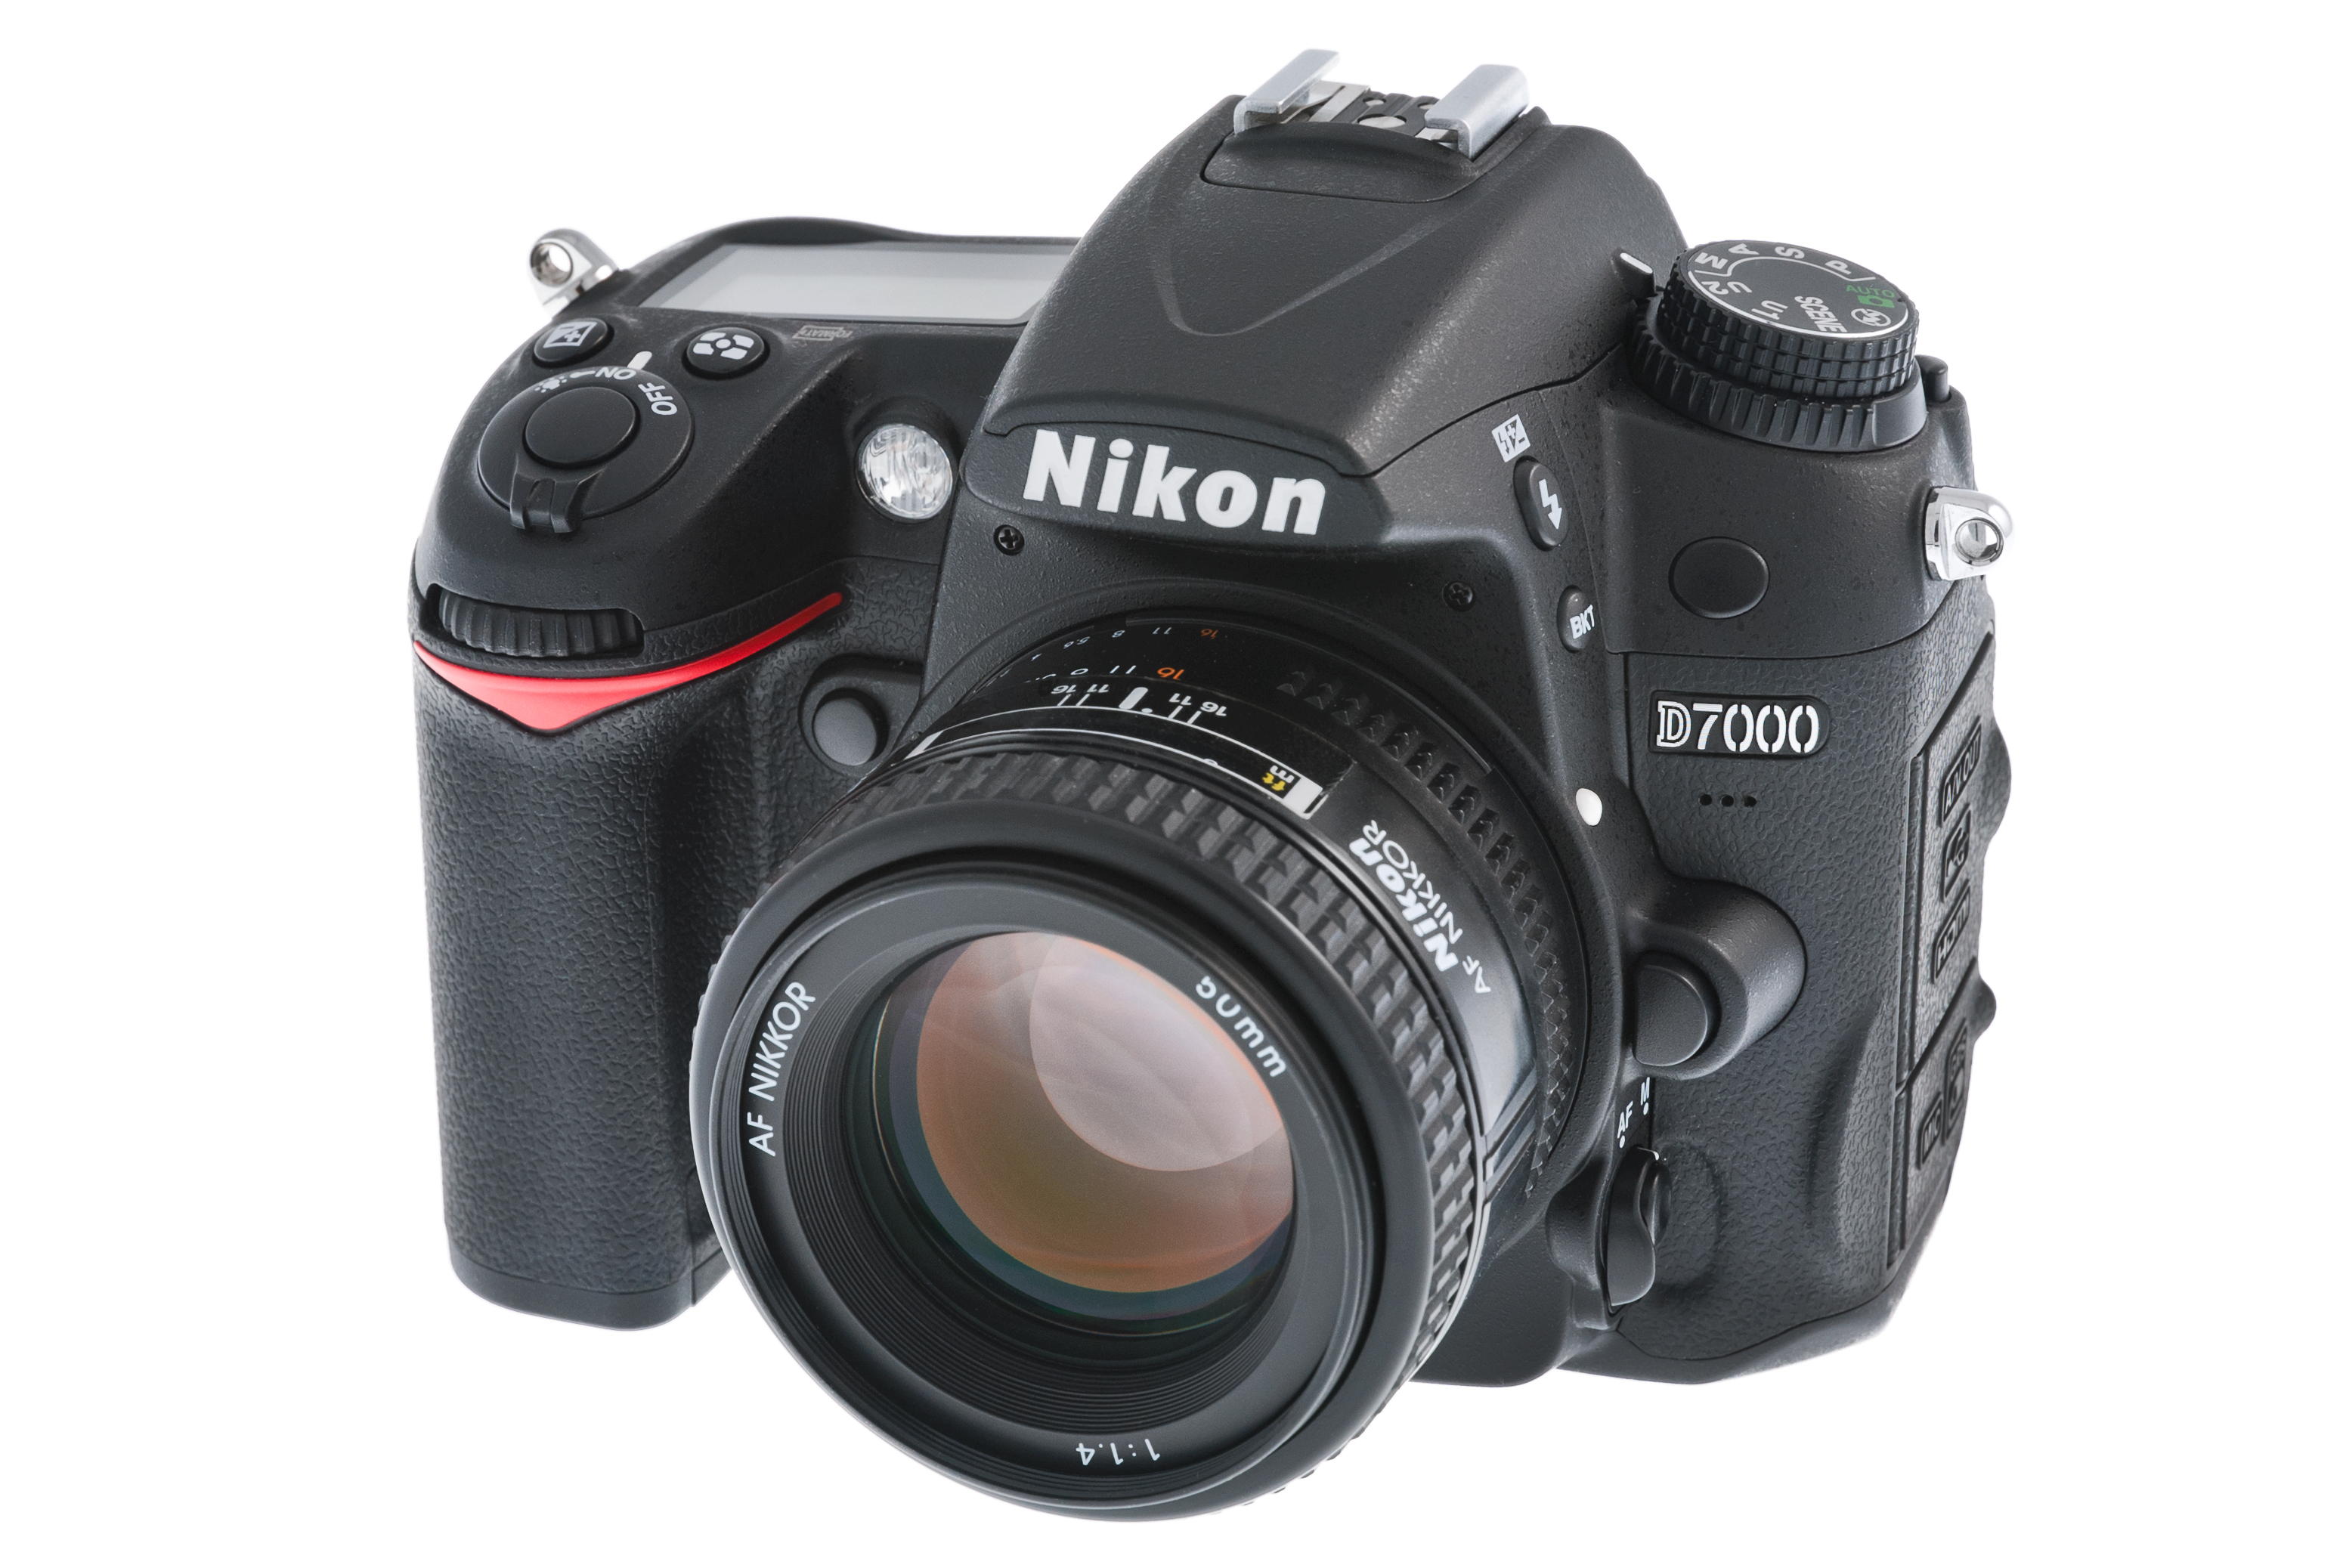 File:Nikon D7000 Digital SLR Camera 05.jpg  Wikipedia, the free